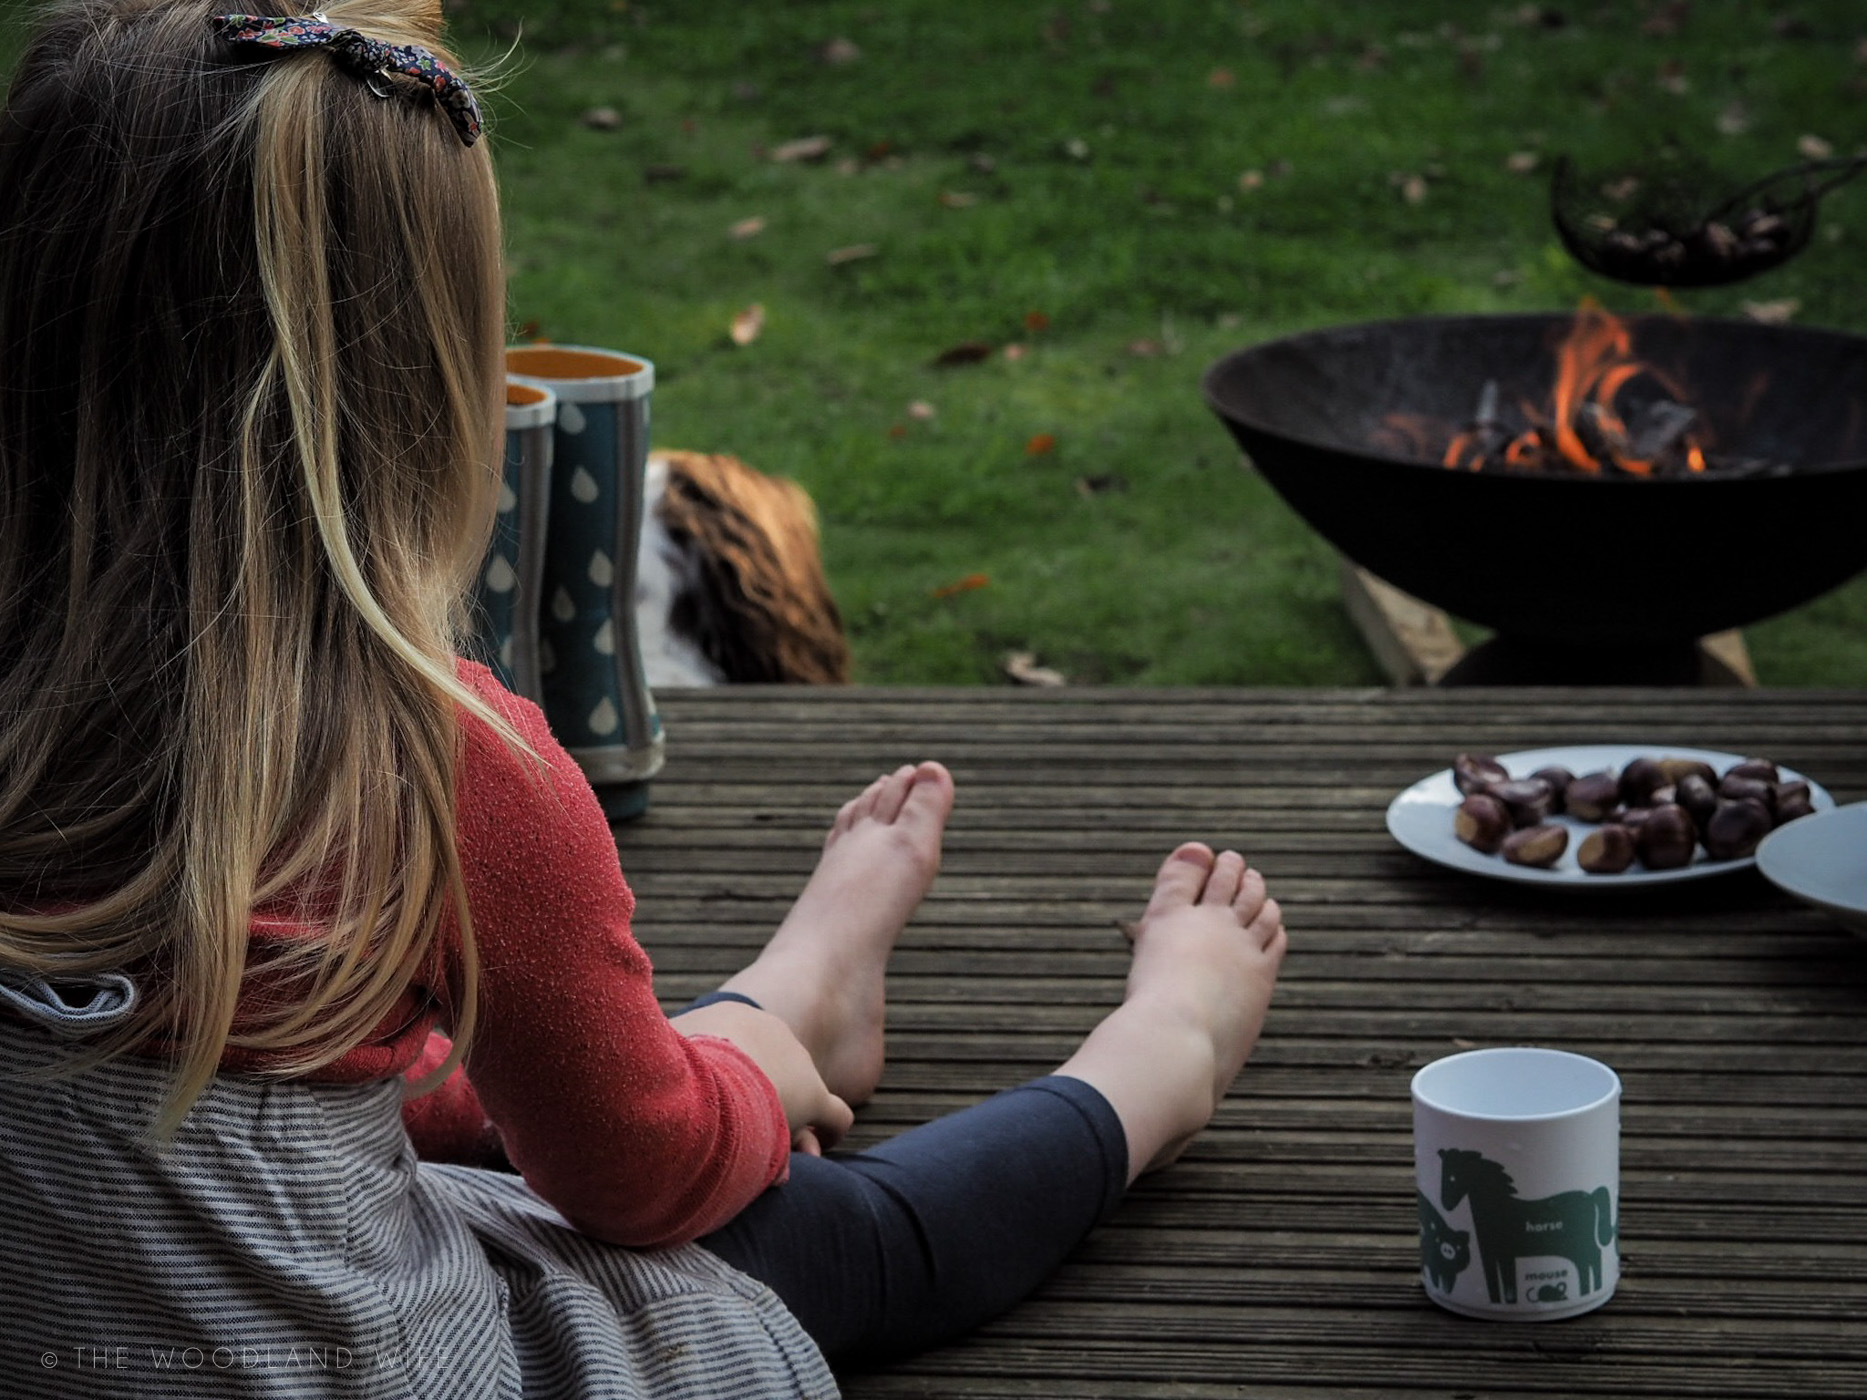 The Woodland Wife - Roasting Chestnuts in the woods - The taste of Autumn - Gather, Roast, Feast on sweet chestnuts